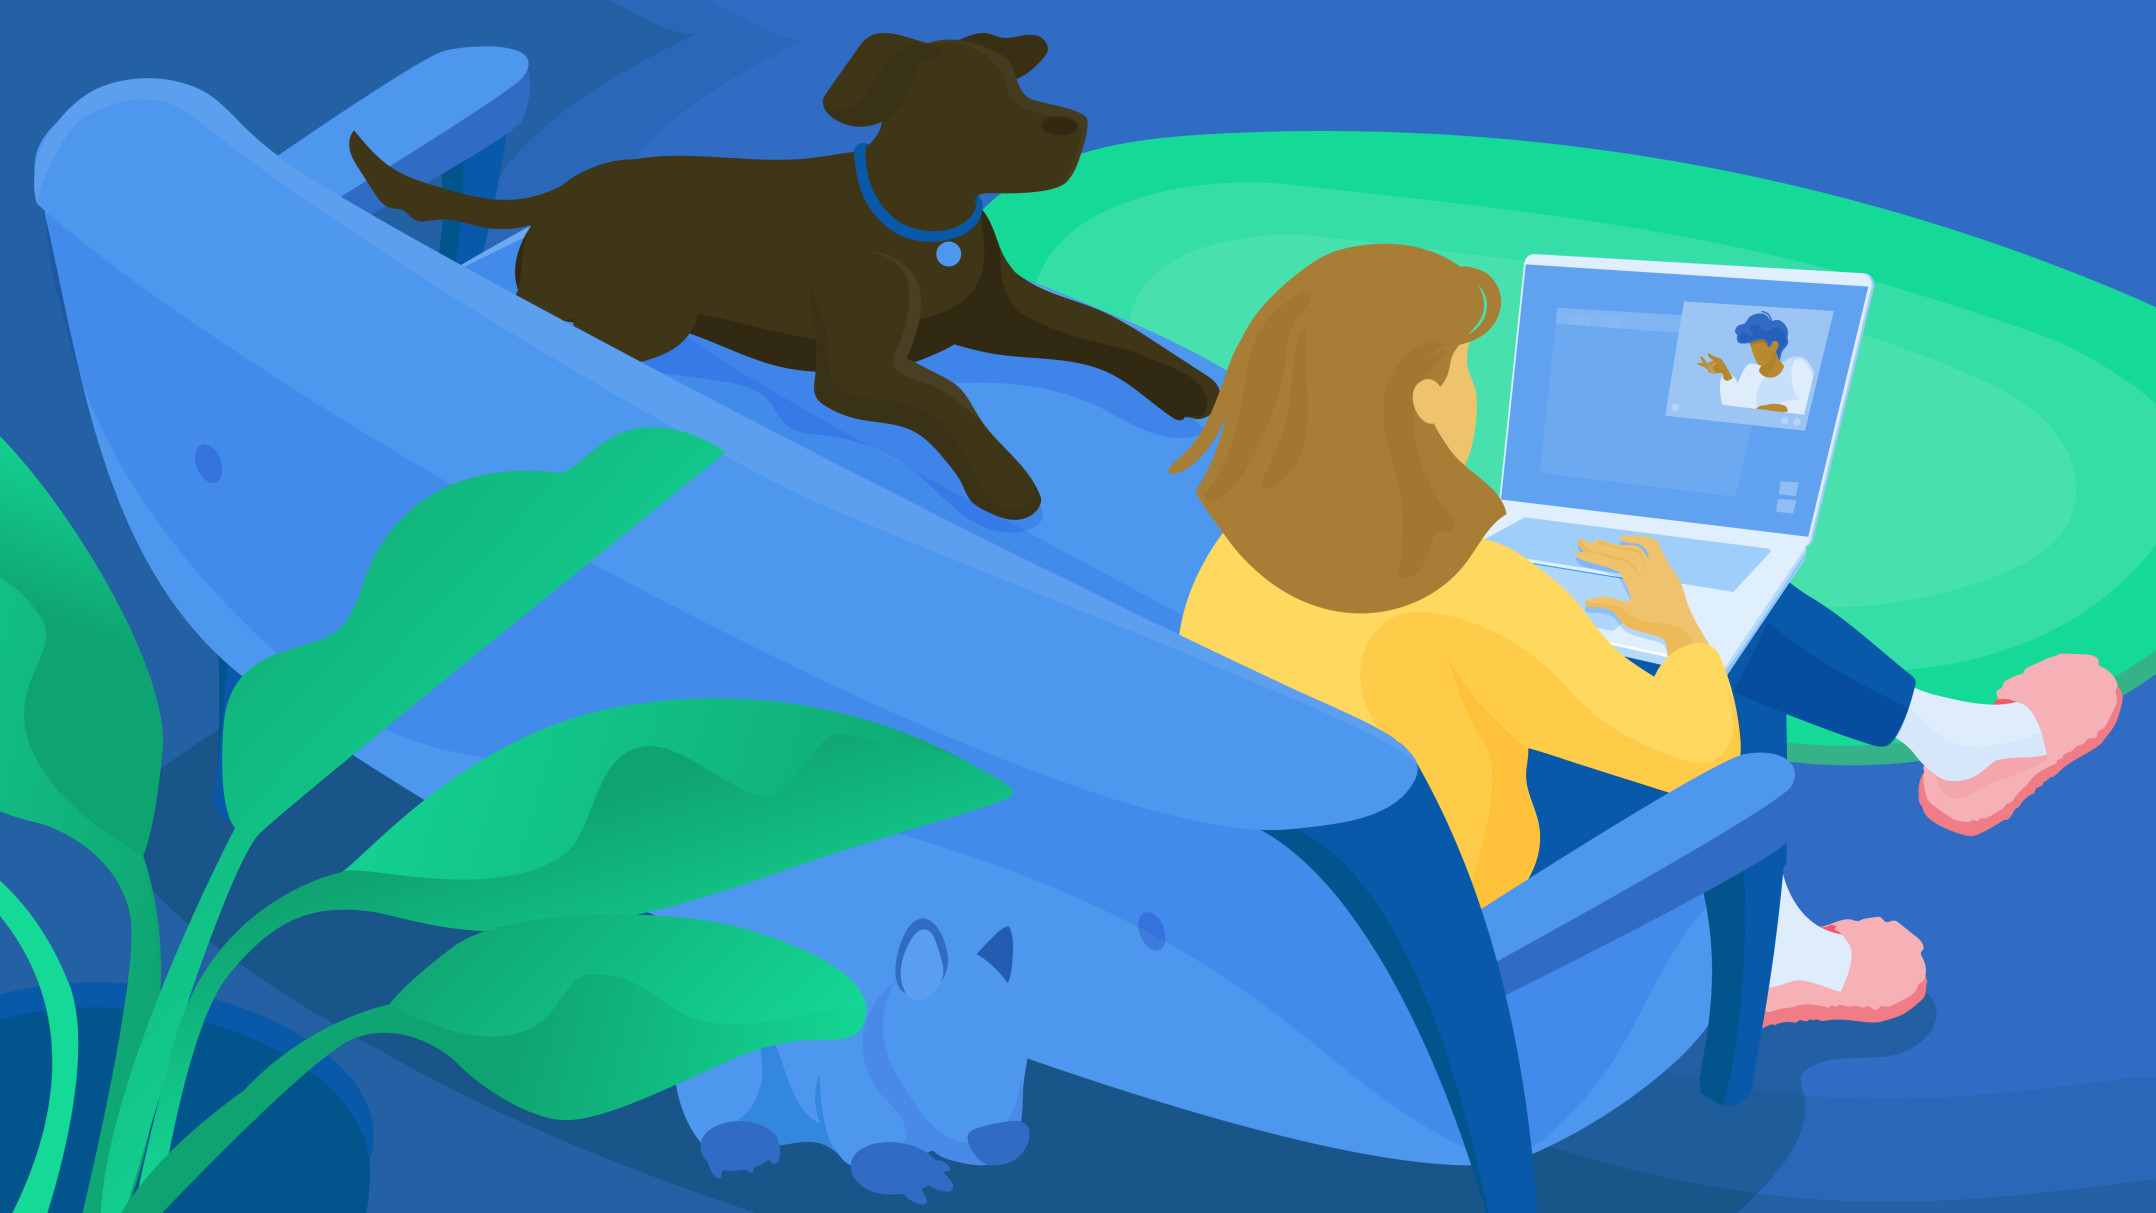 Illustration of a woman working from home with her dog sitting on the couch with her